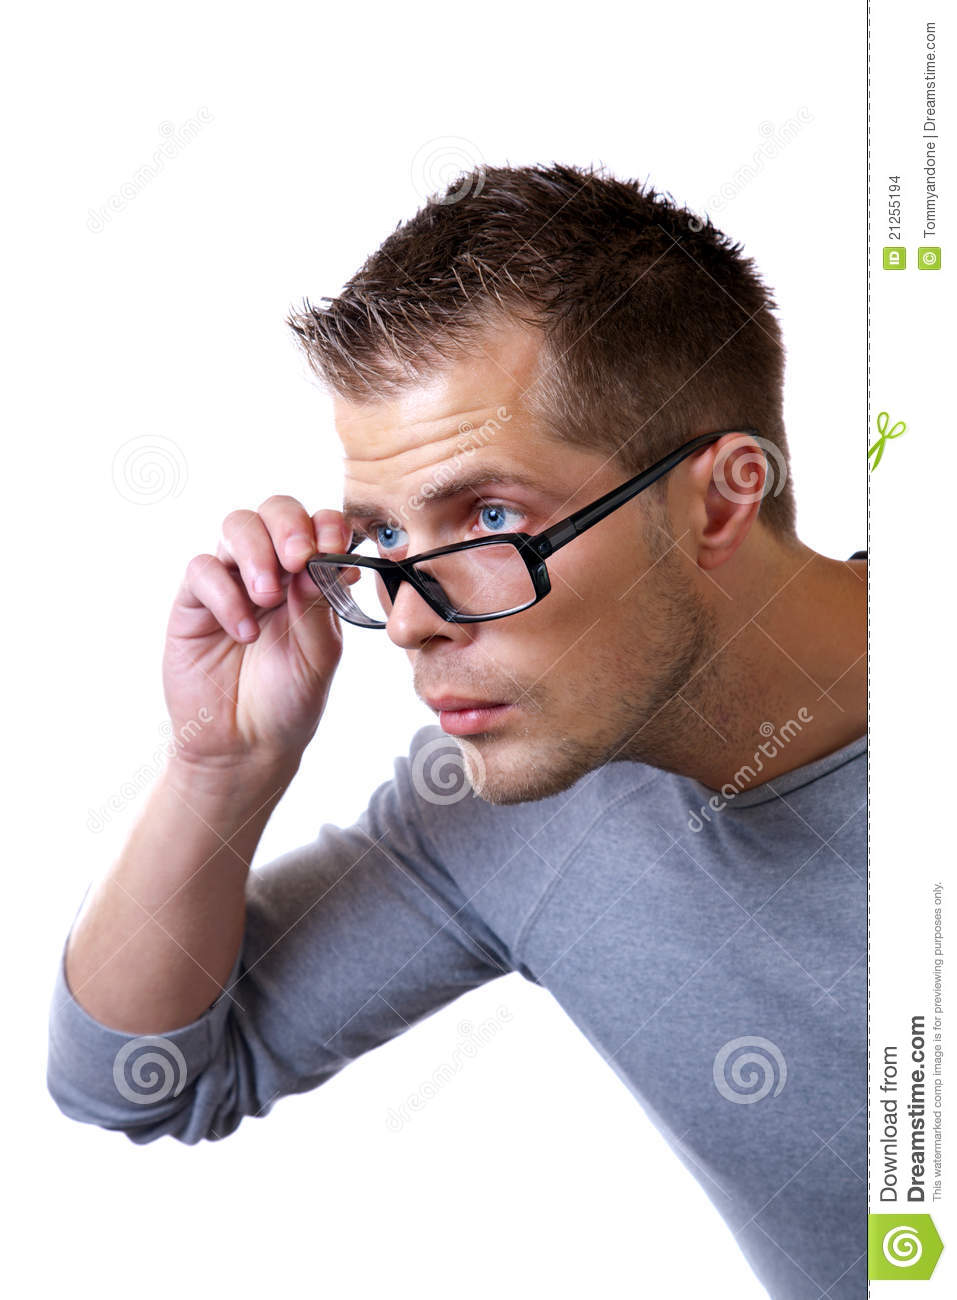 how to get better vision without glasses